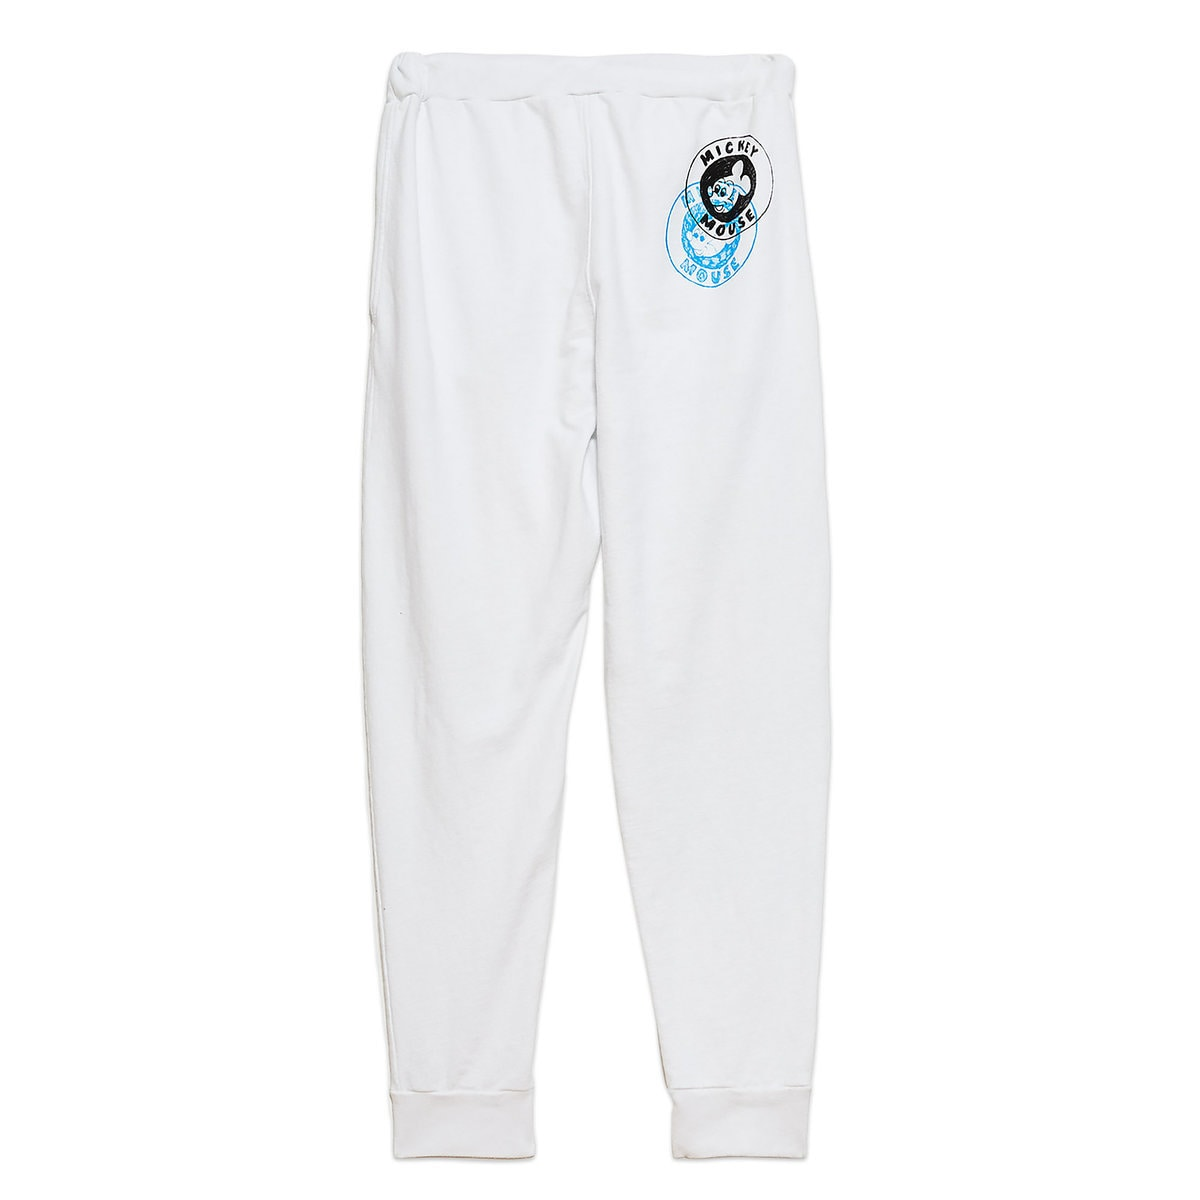 f1a718c208085c Mickey Mouse Sweatpants for Adults by Opening Ceremony - White ...